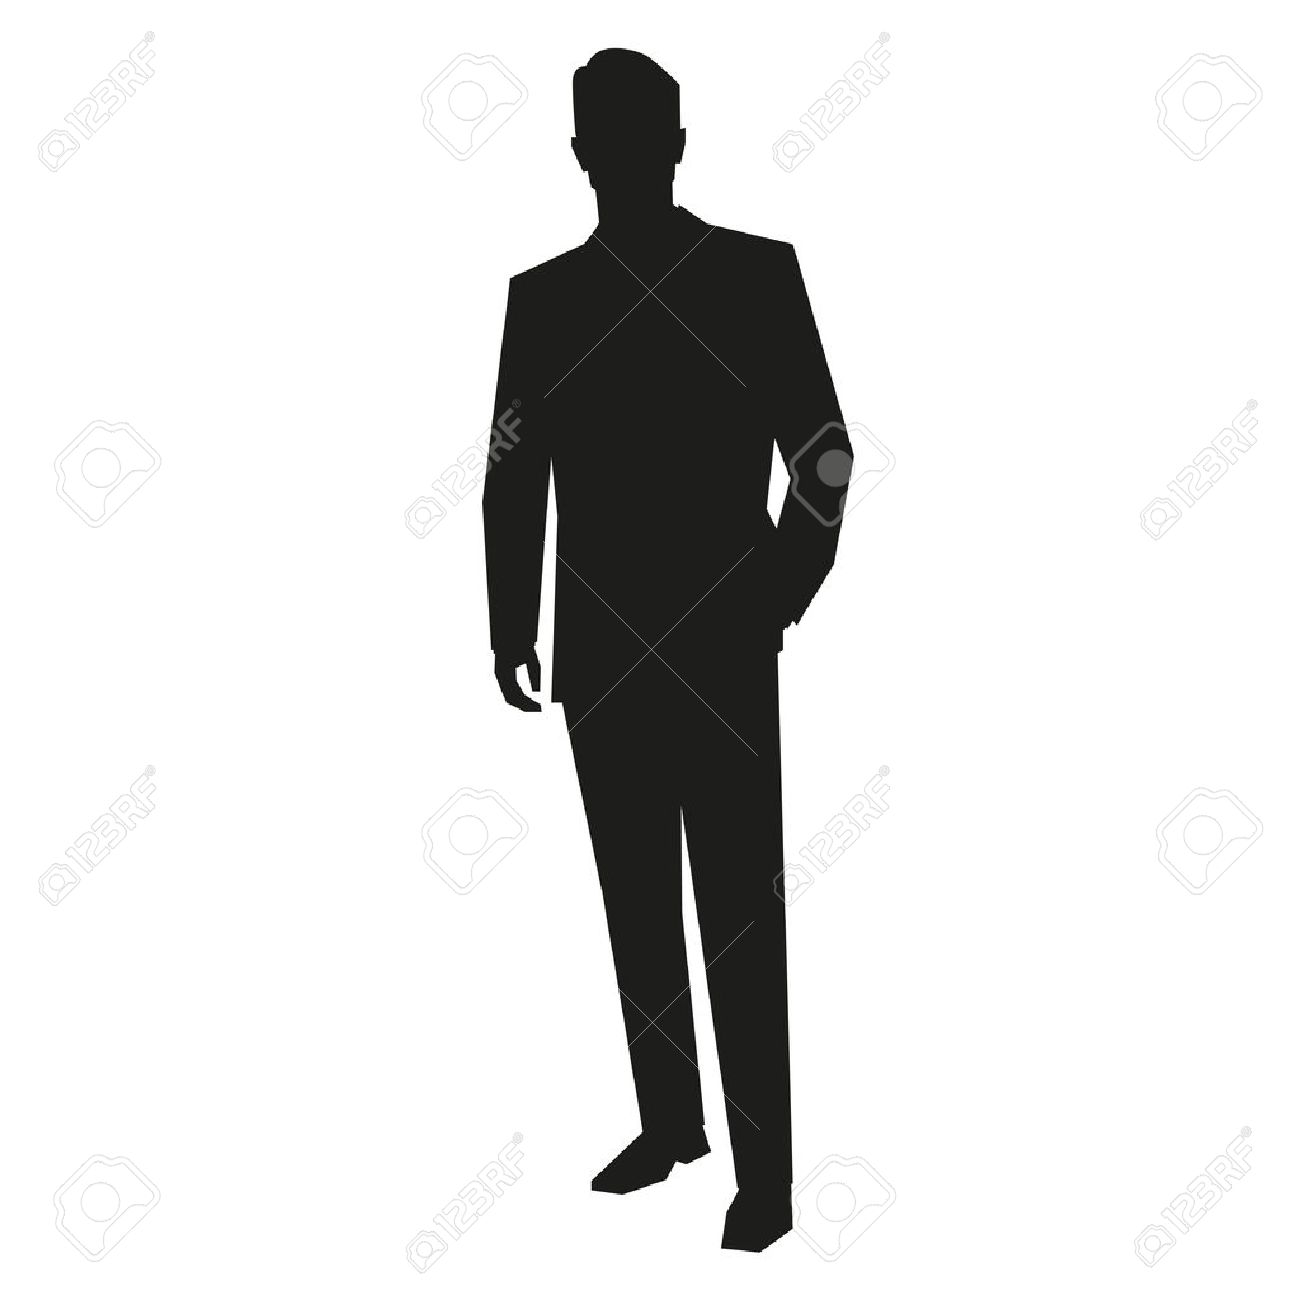 young business man silhouette royalty free cliparts vectors and rh 123rf com man run silhouette vector man silhouette vector free download